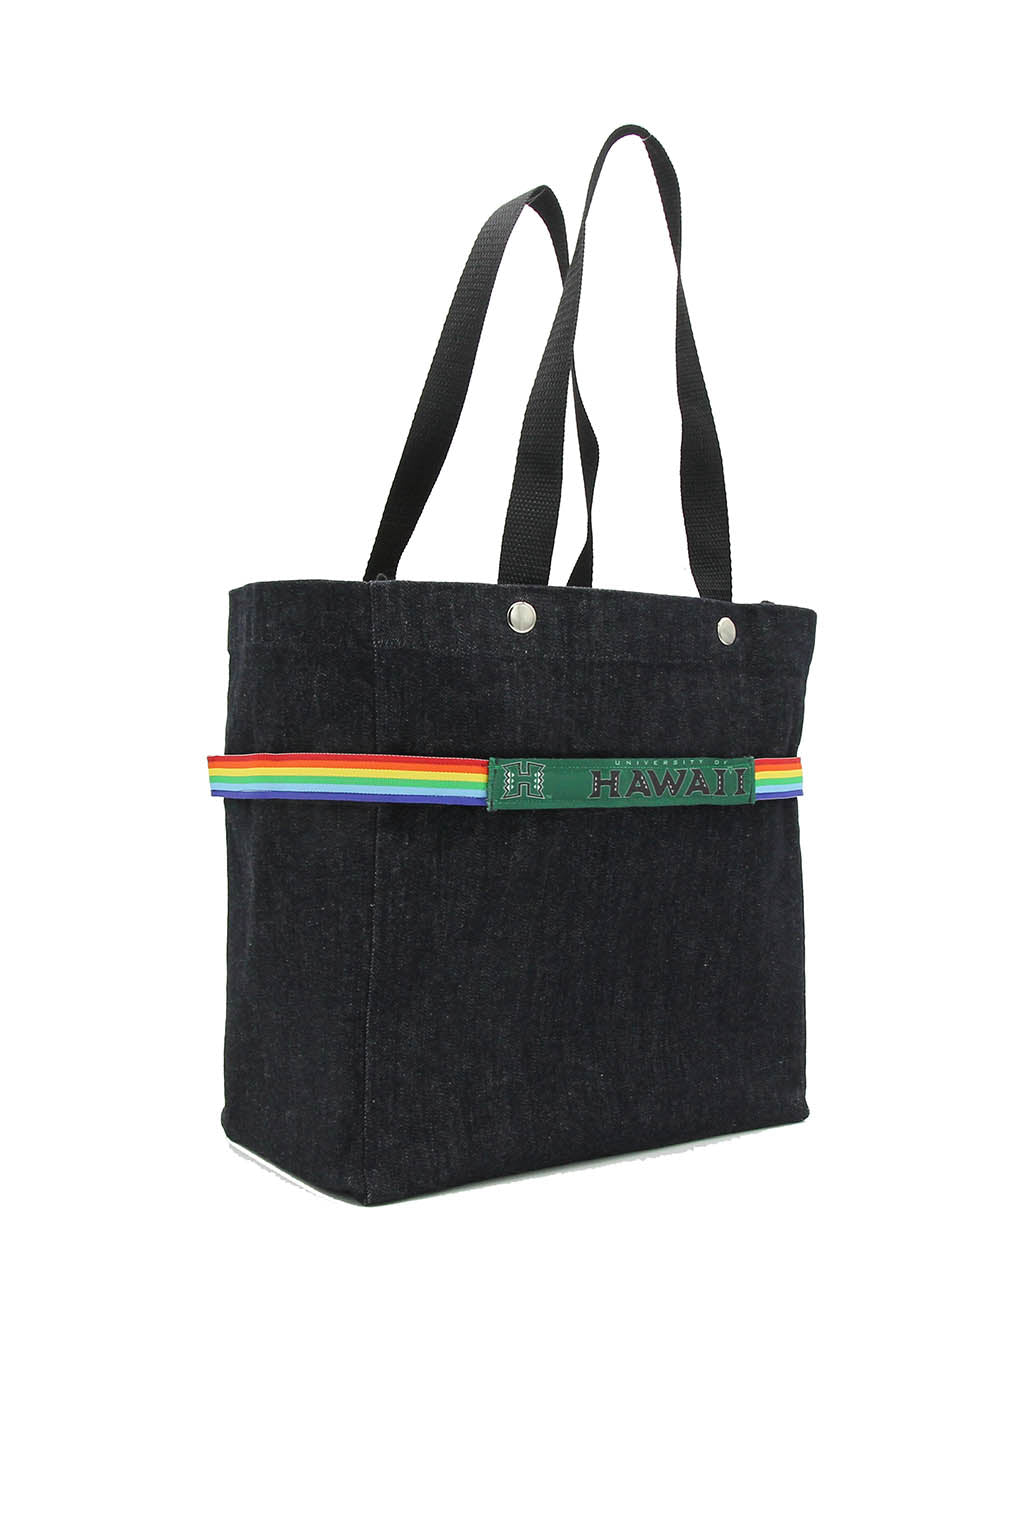 College Ribbon Tote - Hawaii Warriors